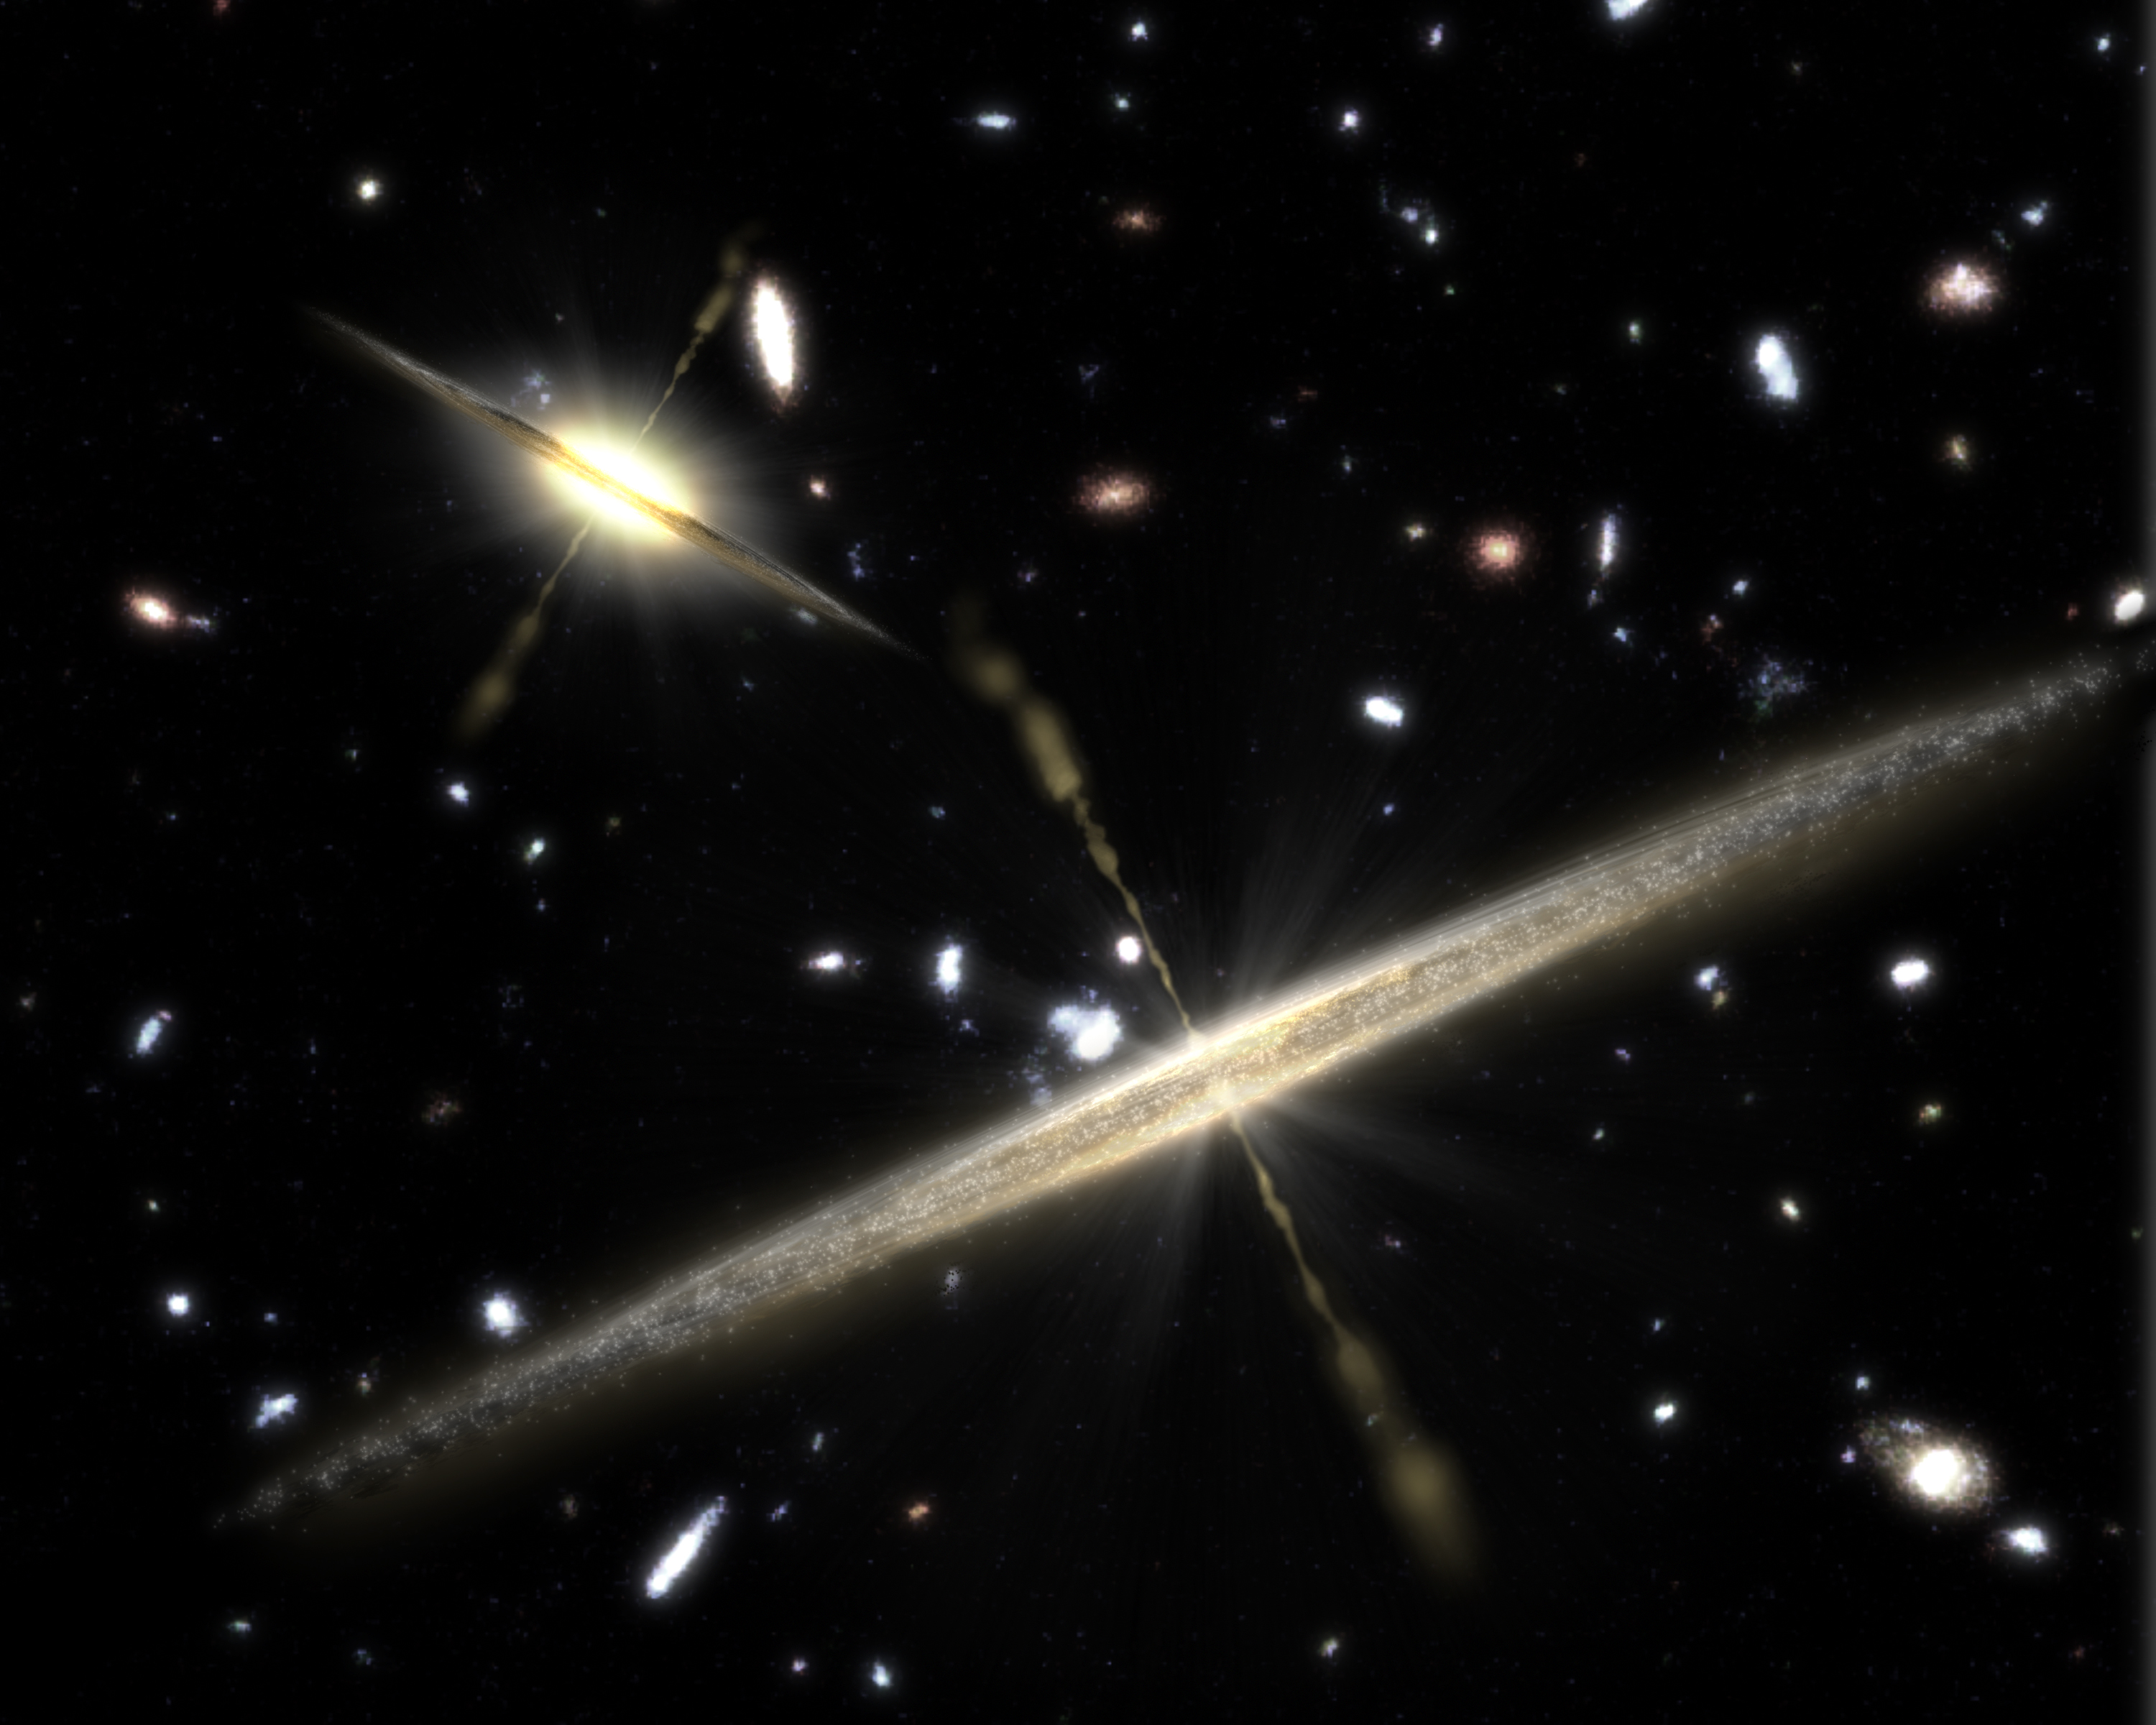 Artist's impression of two different kinds of galaxies: one with a central bulge (top left), and one bulgeless, pure disk galaxy (center). A new study examines how pure disk galaxies form and evolve. [NASA/JPL-Caltech]